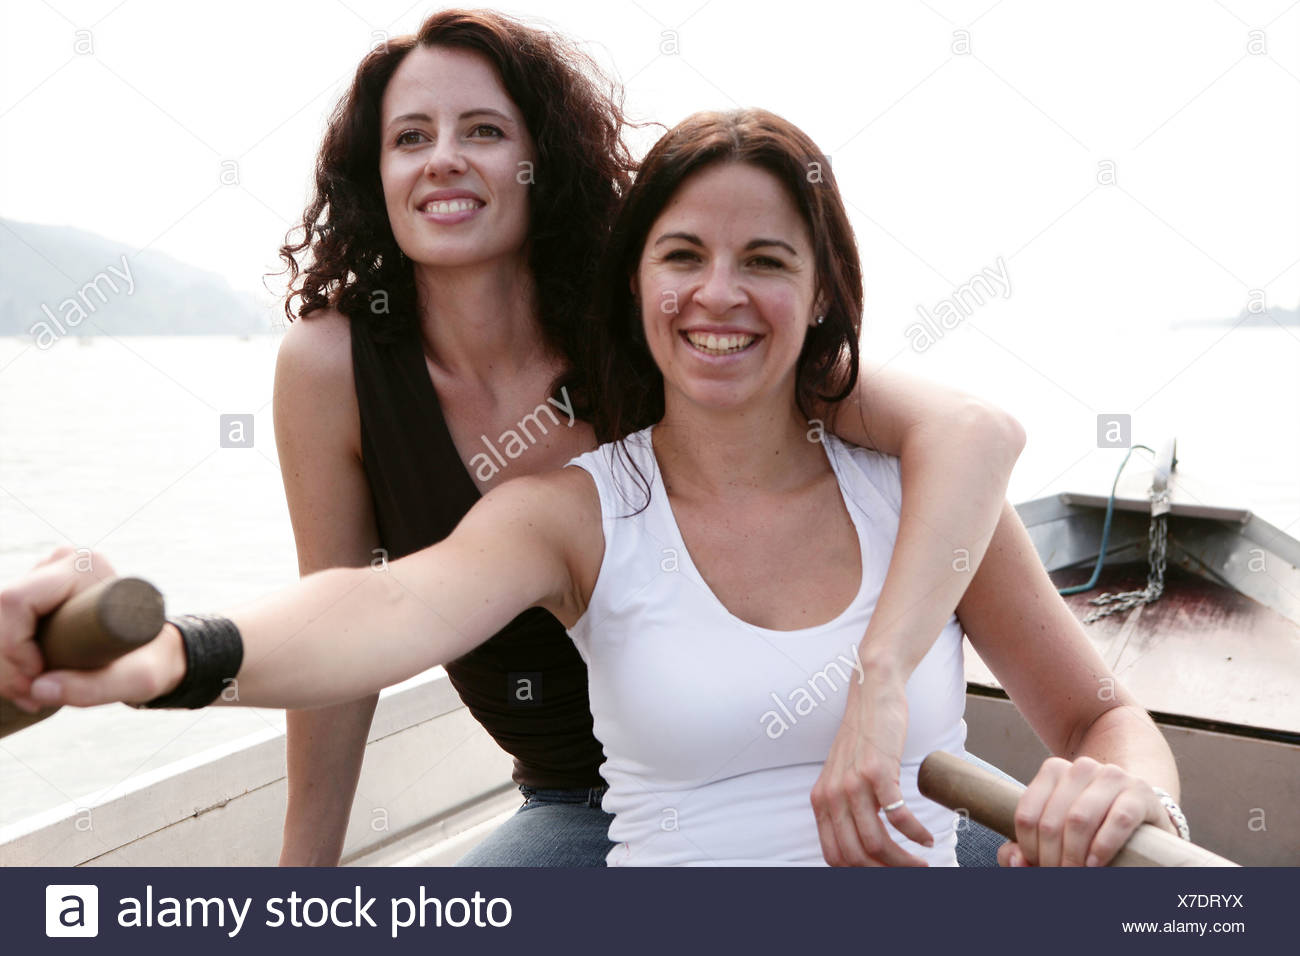 females Pics adult of laughing